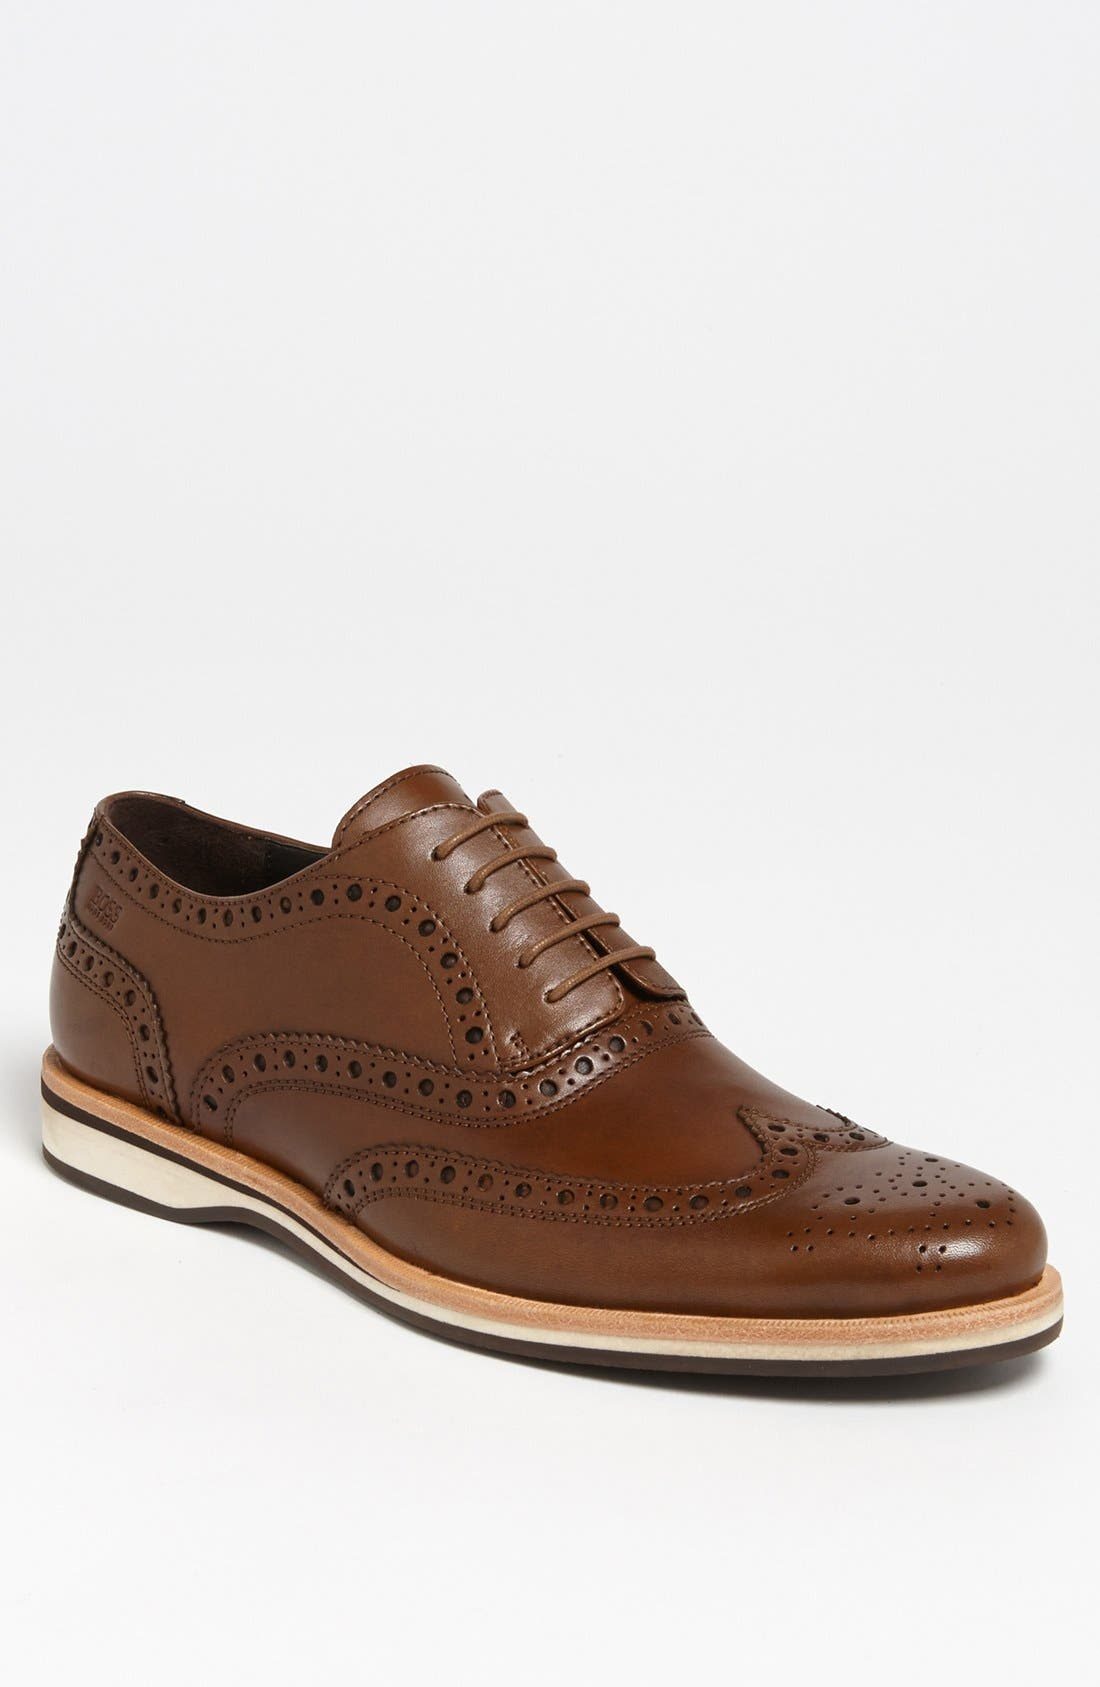 Alternate Image 1 Selected - BOSS HUGO BOSS 'Newero' Wingtip